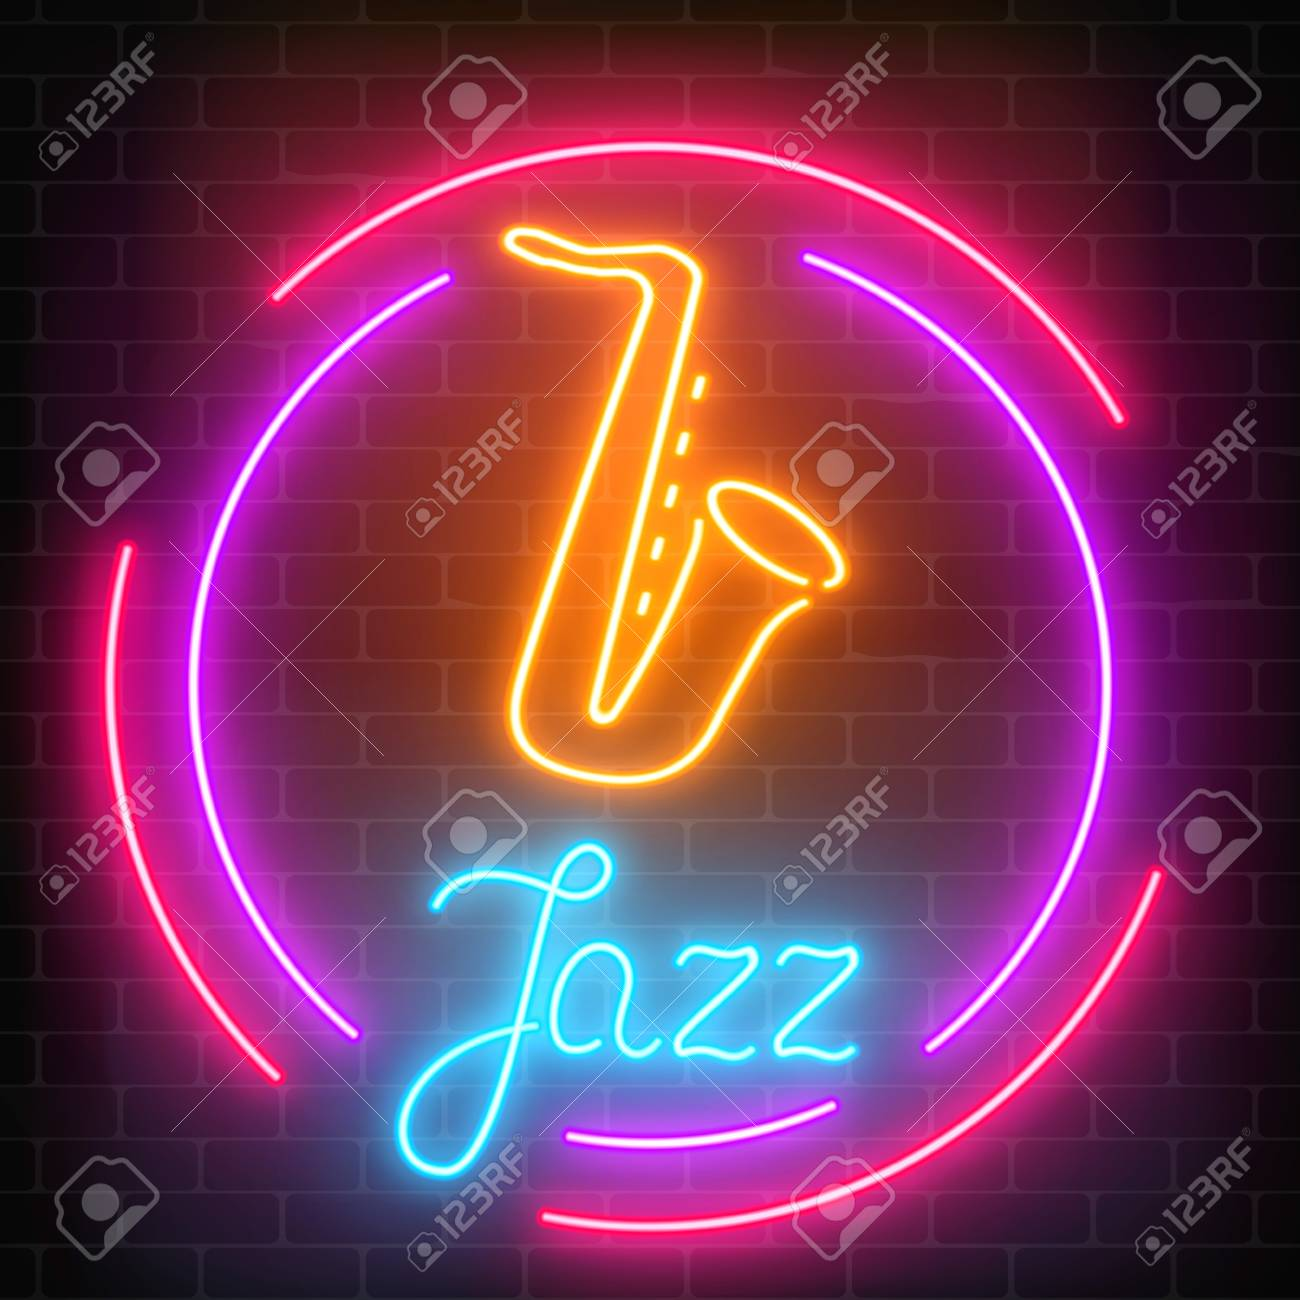 Neon jazz cafe with saxophone glowing sign with round frame on a dark brick wall background. Glowing street signboard of bar with karaoke and blues singers. Vector illustration. - 92144337